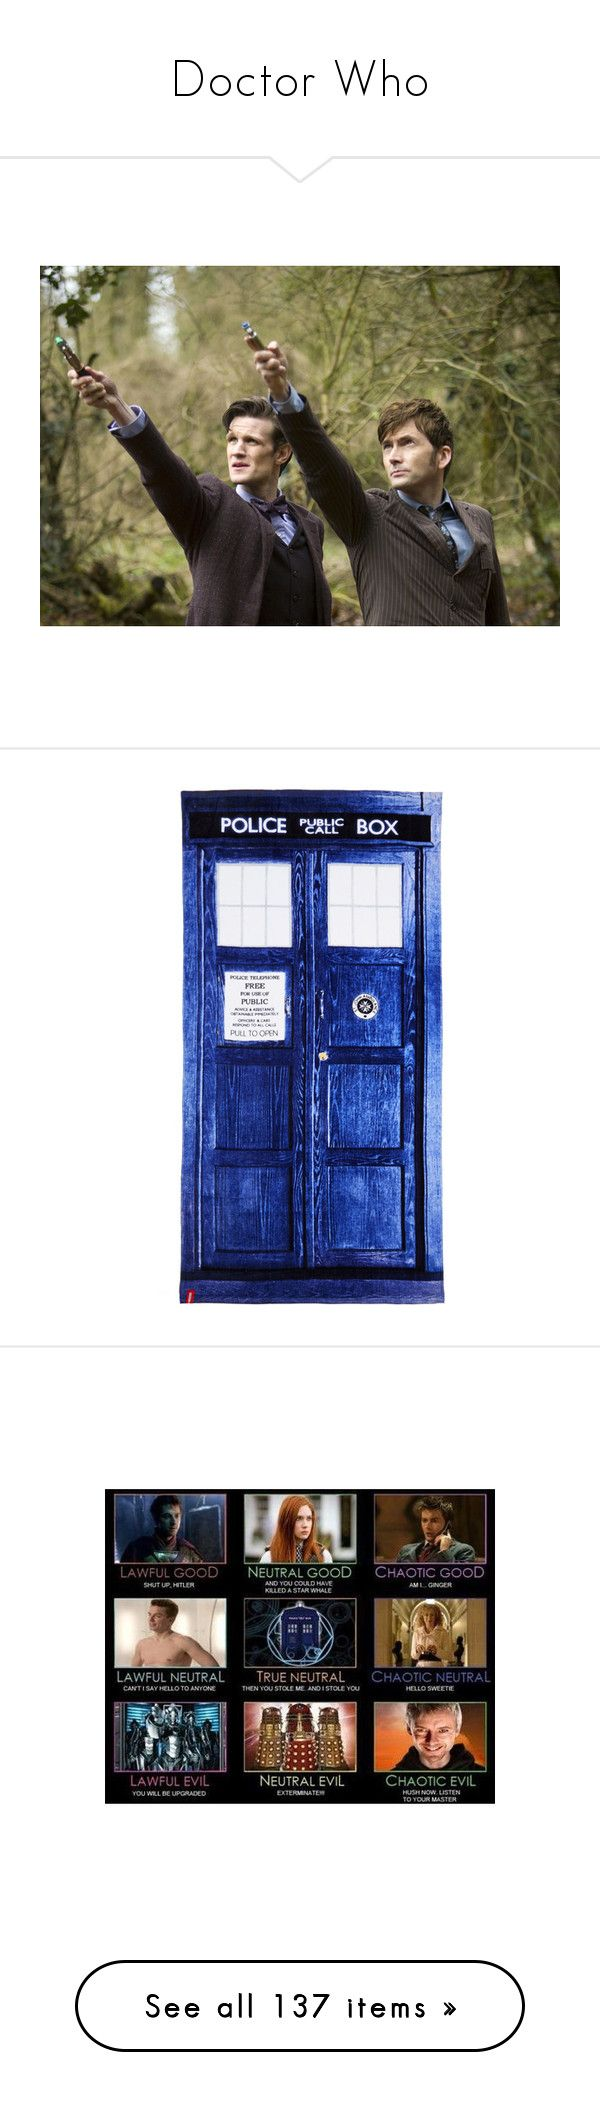 """Doctor Who"" by amylightwood ❤ liked on Polyvore featuring home, bed & bath, bath, doctor who, towel, fillers, extra, backgrounds, blue and cotton"